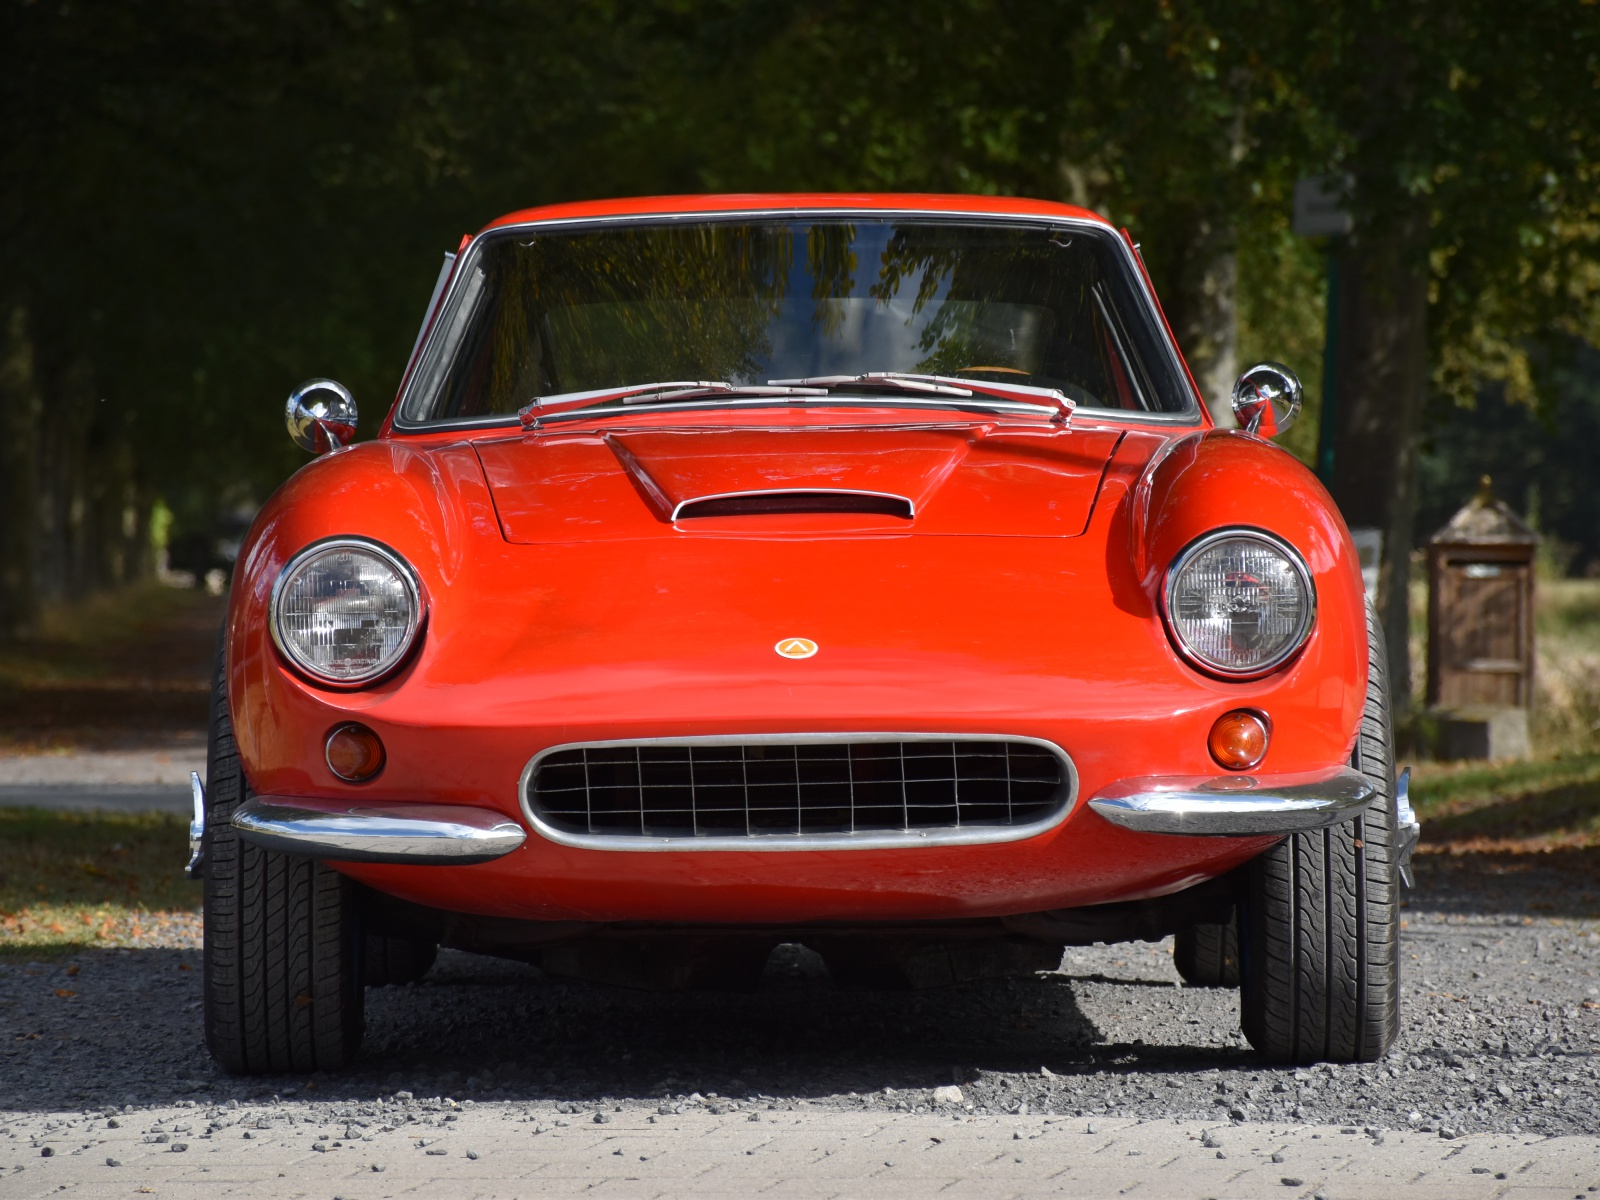 Cars For Under 5000 >> 1965 Apollo GT 5000 'One-off' Factory Corvette engine - Turn8 Cars